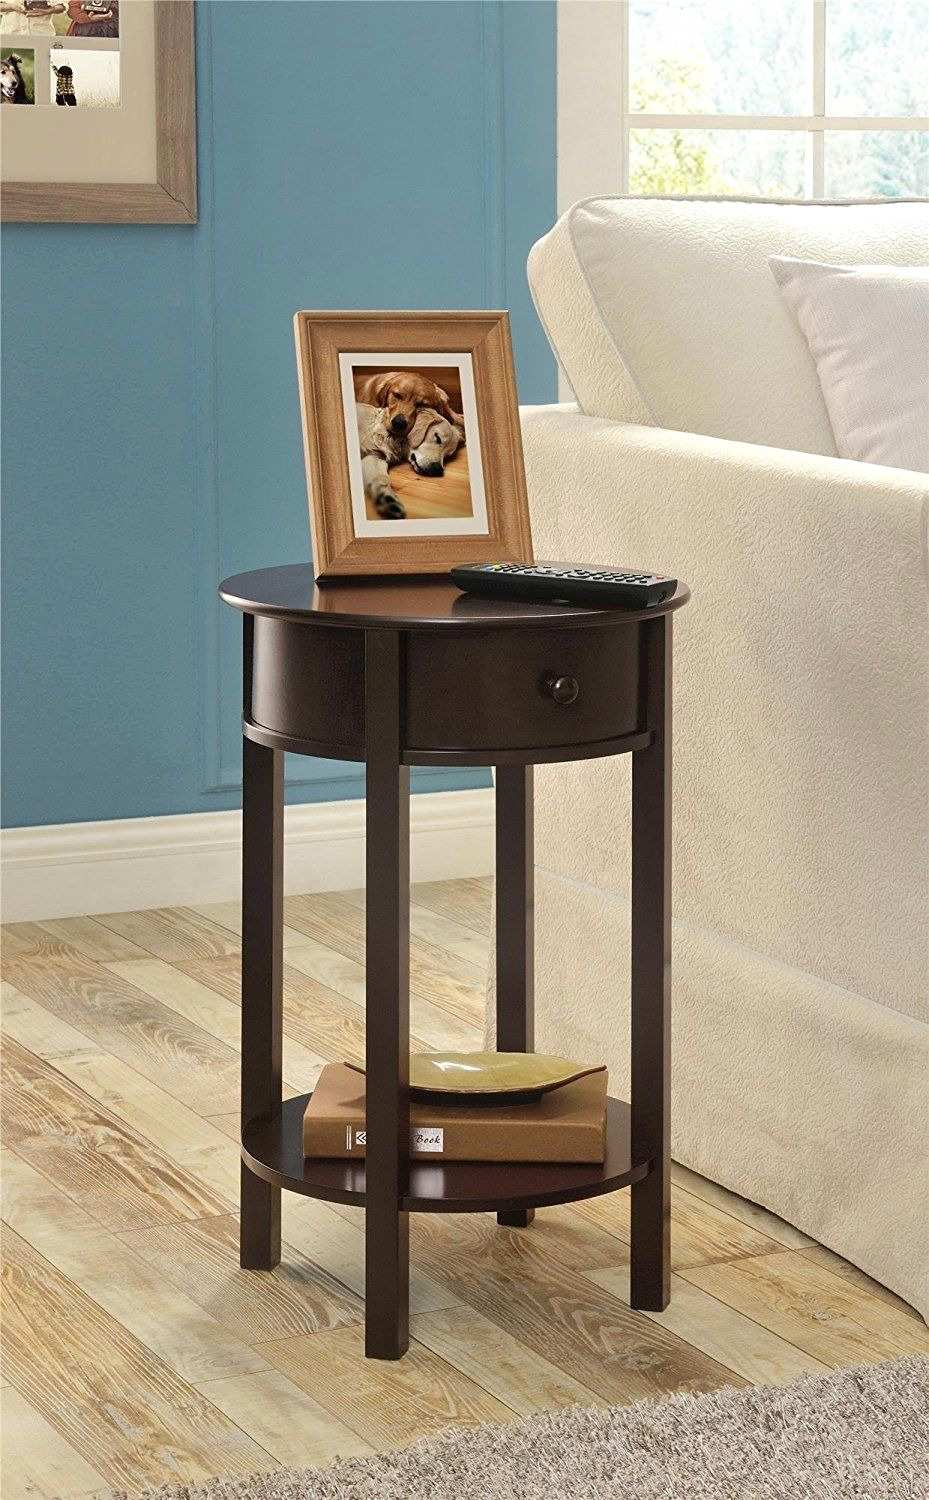 trendy small end tables for living room accent table side round furniture storage triangle wood battery operated bedroom lights target cabinet mirrored glass with drawer headboard